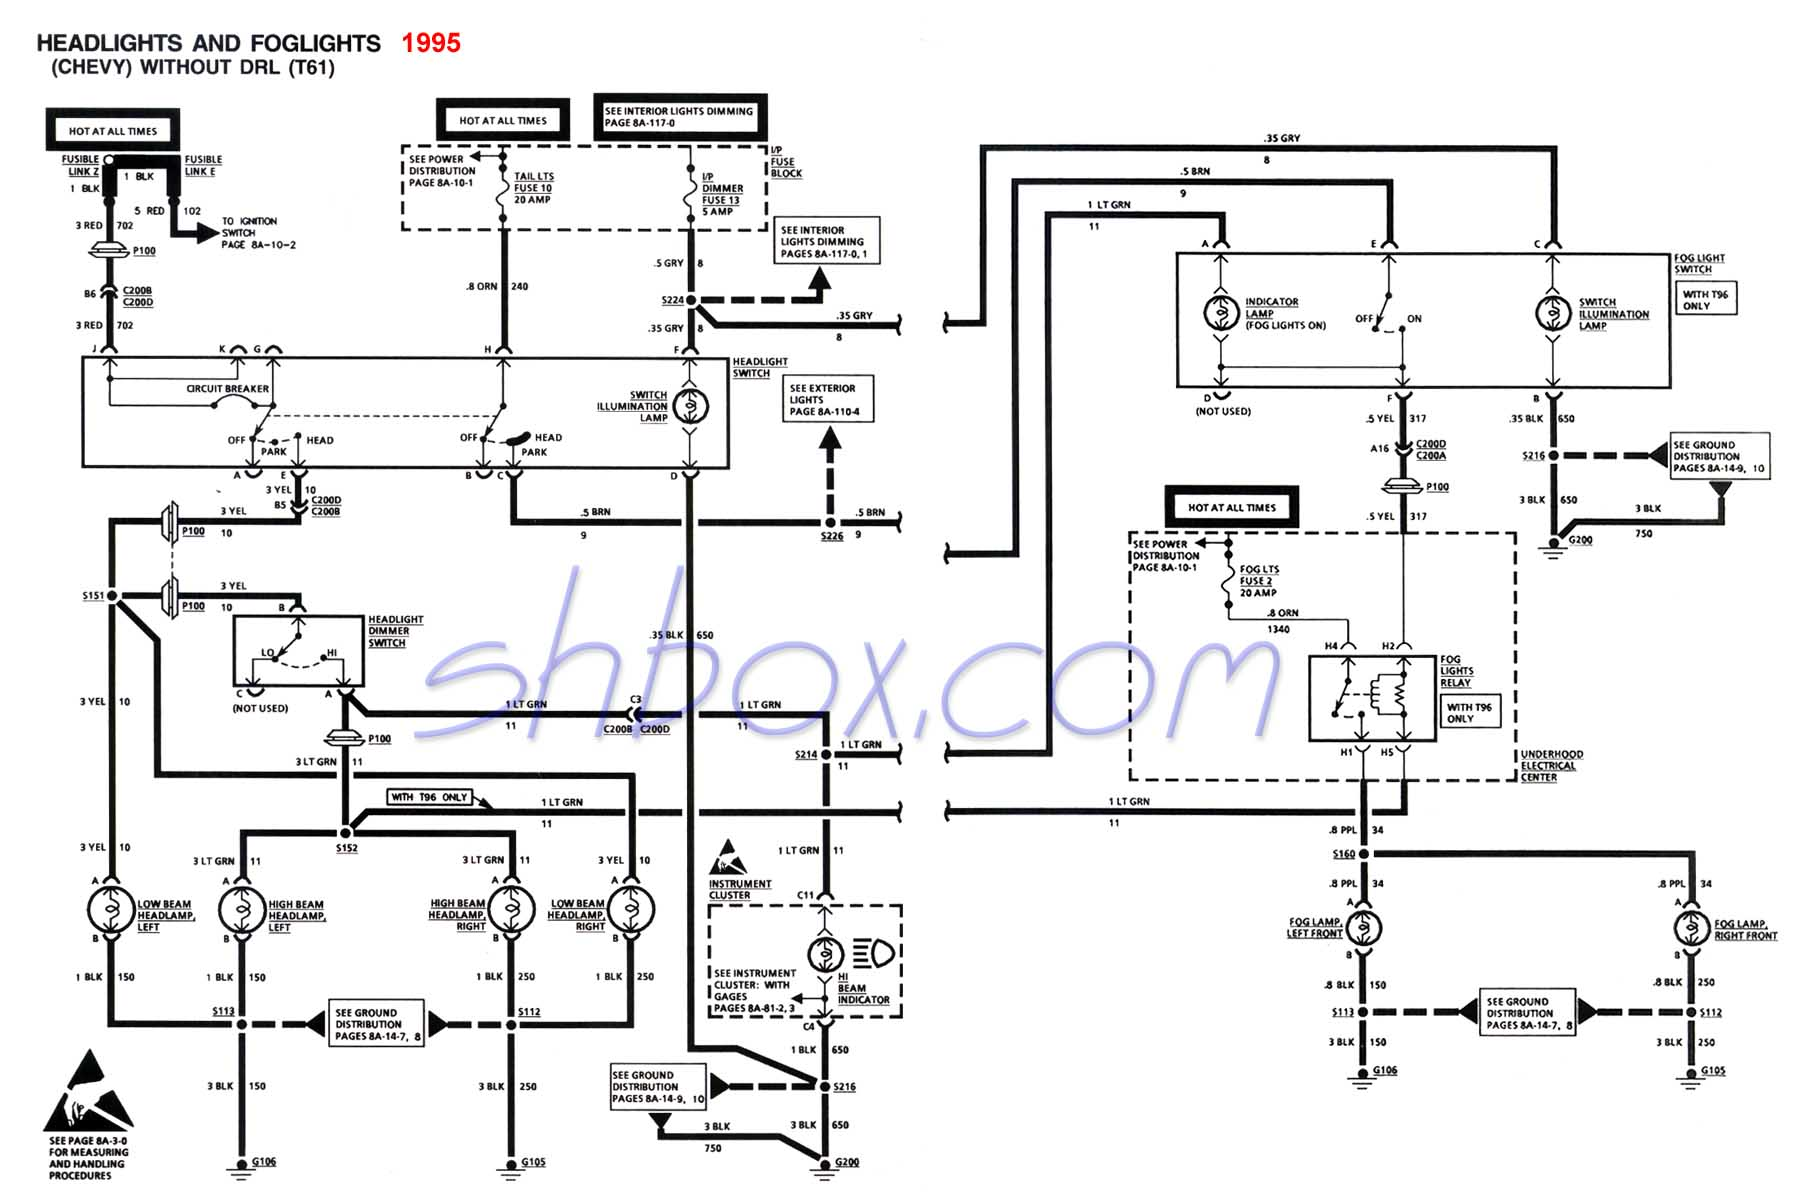 Camaro Wiring Schematic Diagram Data Pontiac Speakers 4th Gen Lt1 F Body Tech Aids Radio